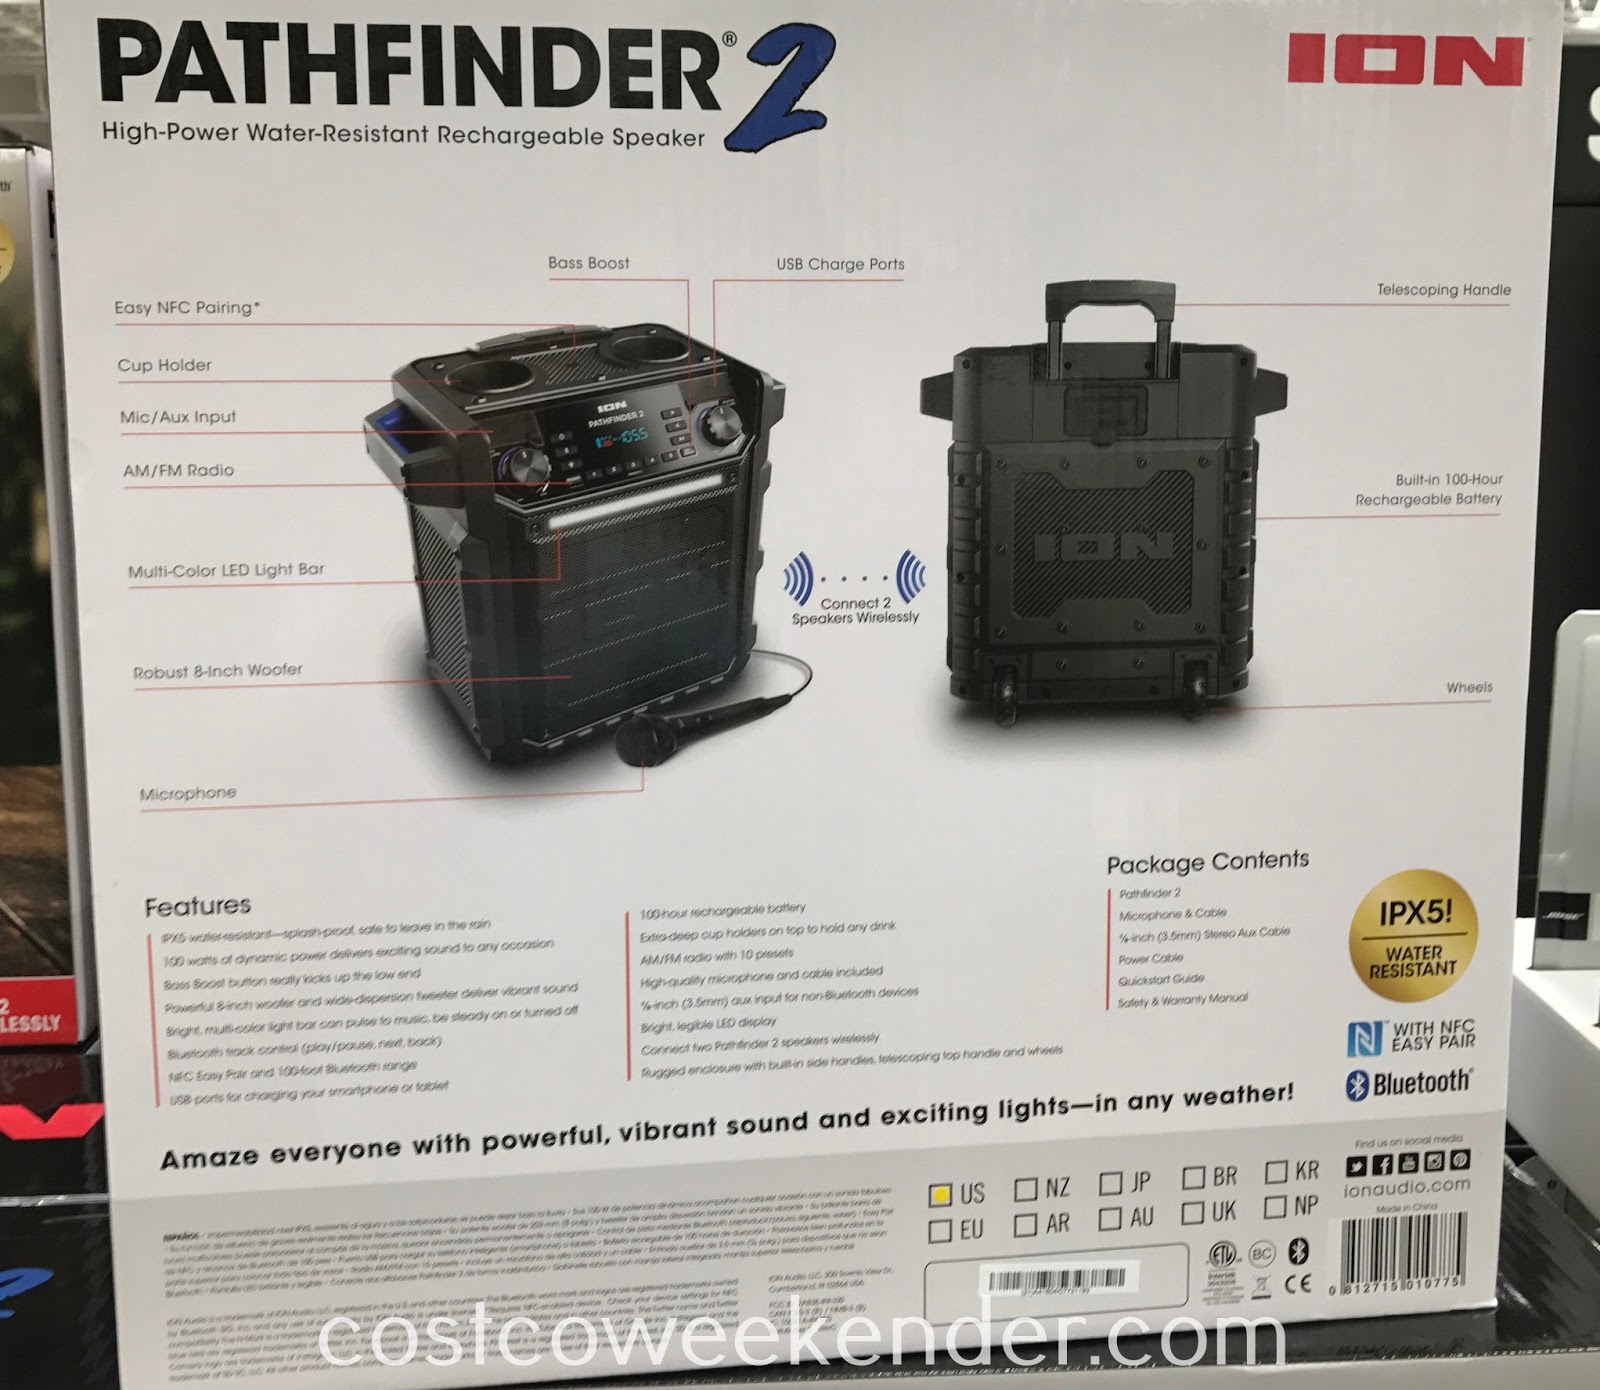 Costco 1110506 - Ion Pathfinder 2 Bluetooth Speaker: rugged enough for taking it on the go to the beach, camping, tailgating or poolside